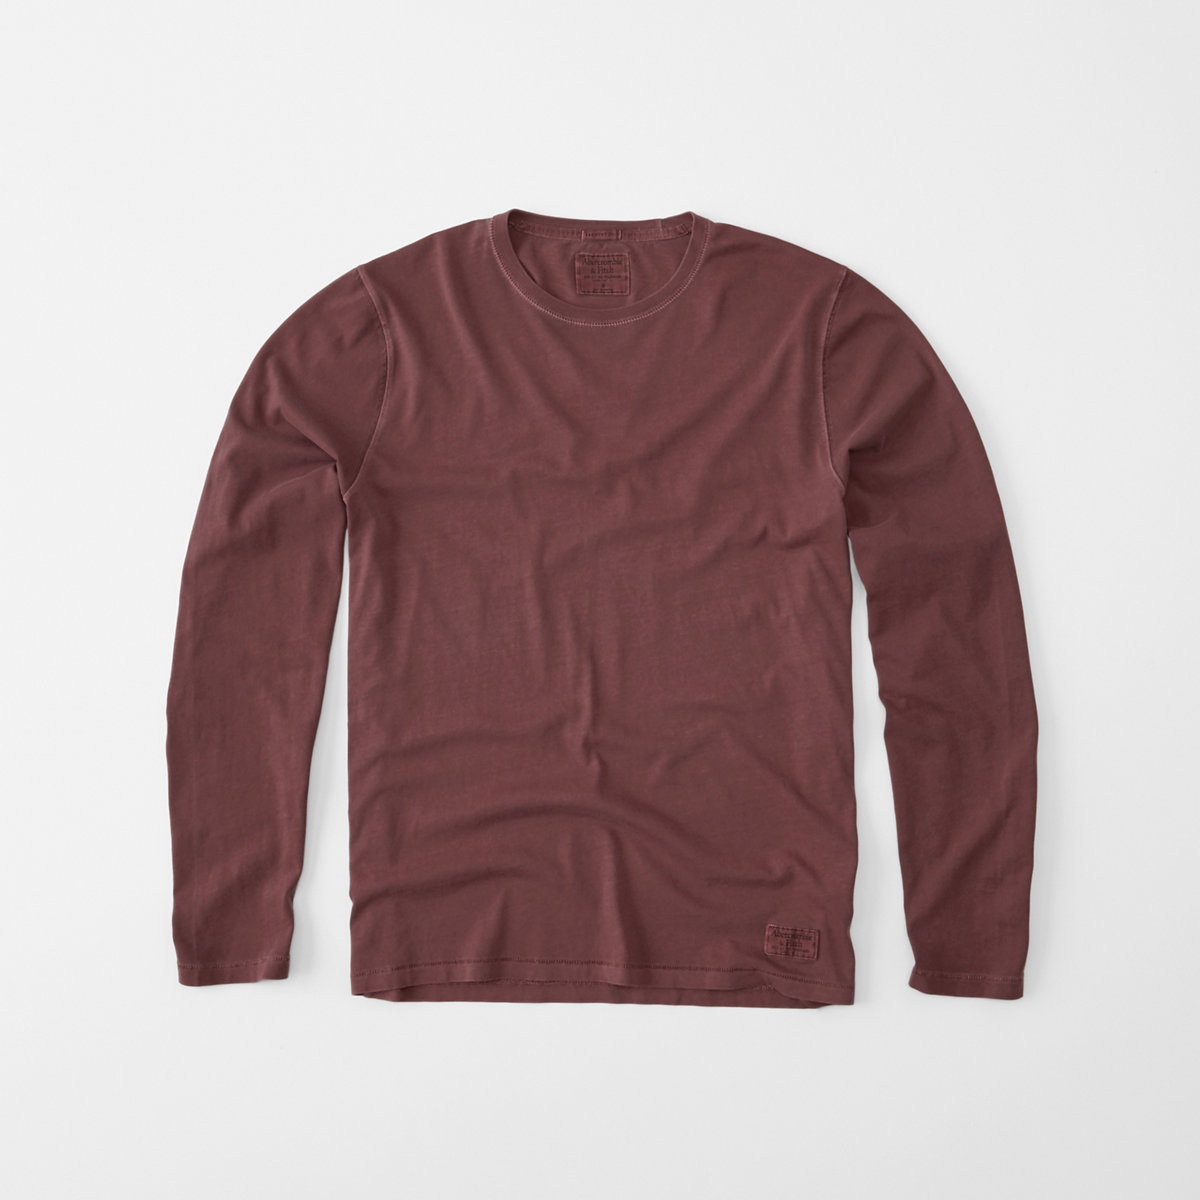 Long-Sleeve Garment Dye Tee